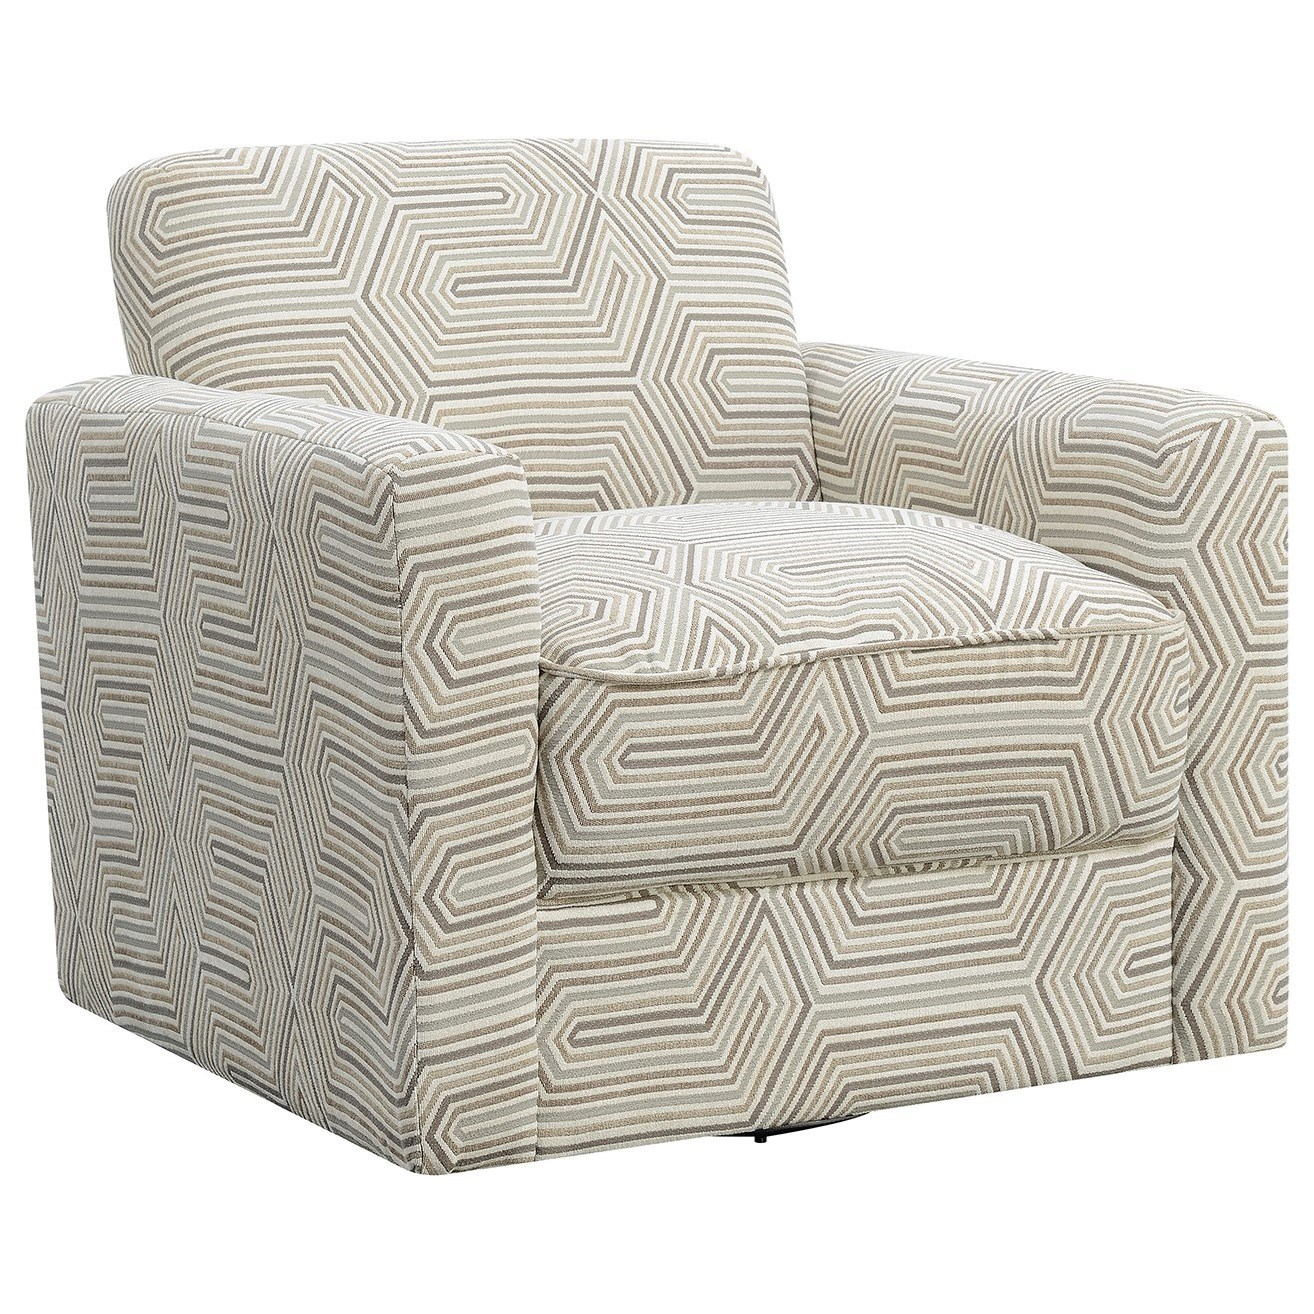 Incroyable Elements International Paramount Upholstered Chair   Item Number:  UPTxx100SW AvirlAngled